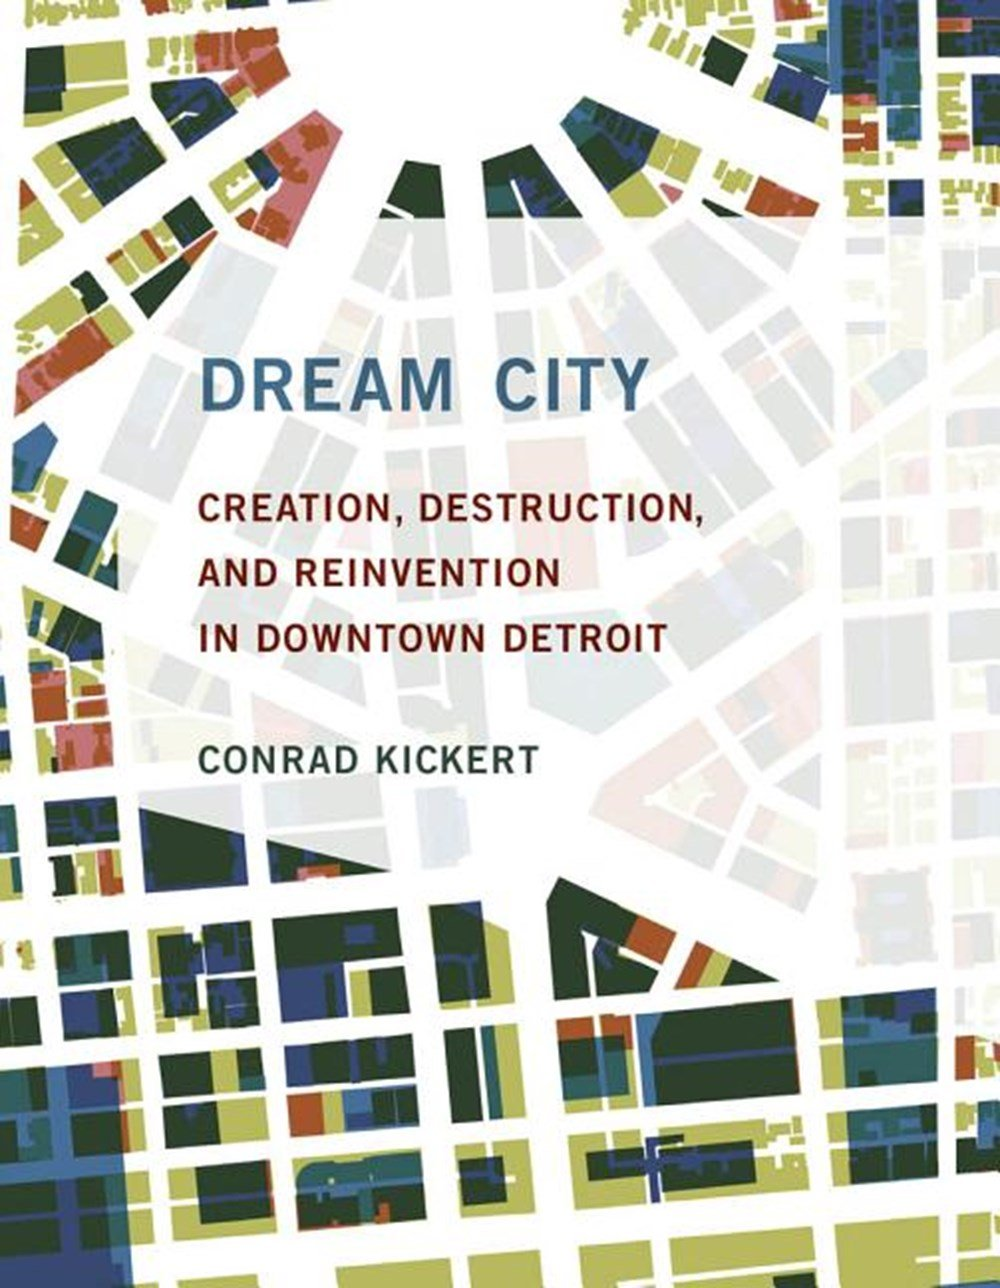 Dream City Creation, Destruction, and Reinvention in Downtown Detroit